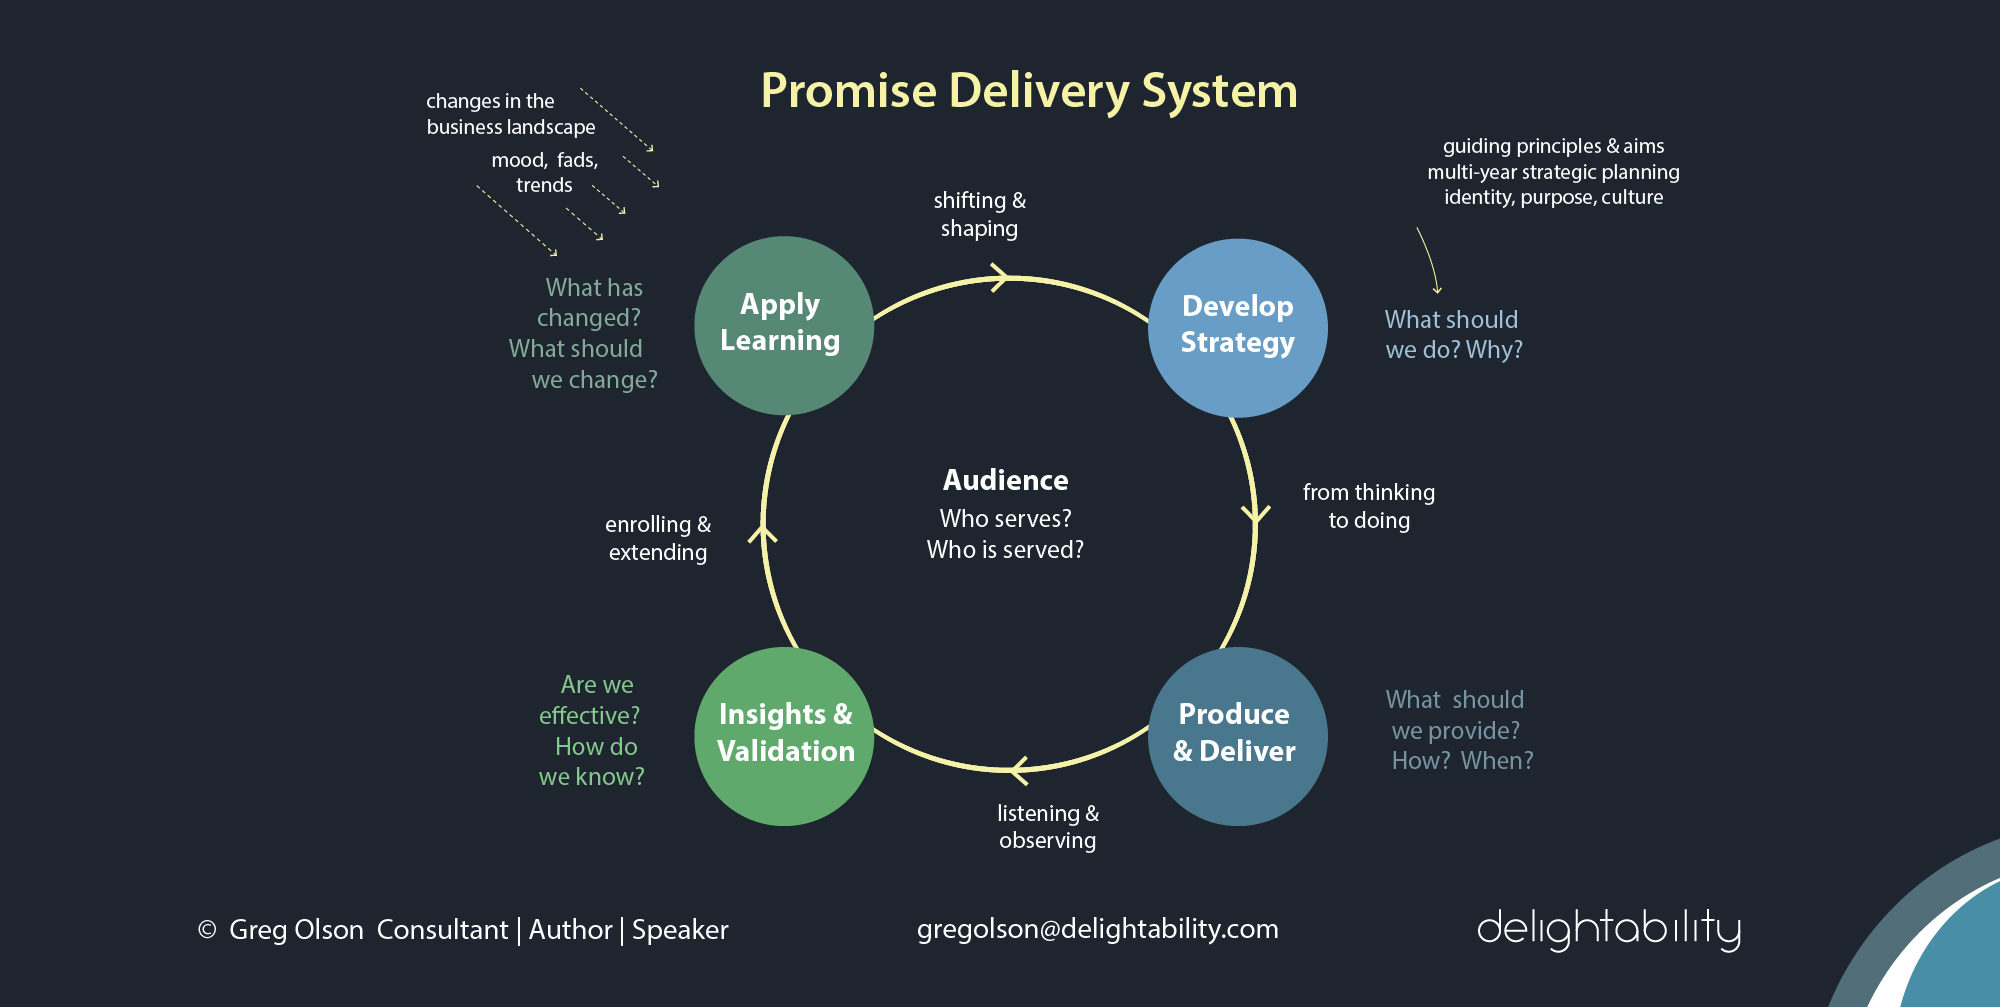 image of Promise Delivery System from Gregory Olson - delightability consultant and author of The Experience Design Blueprint